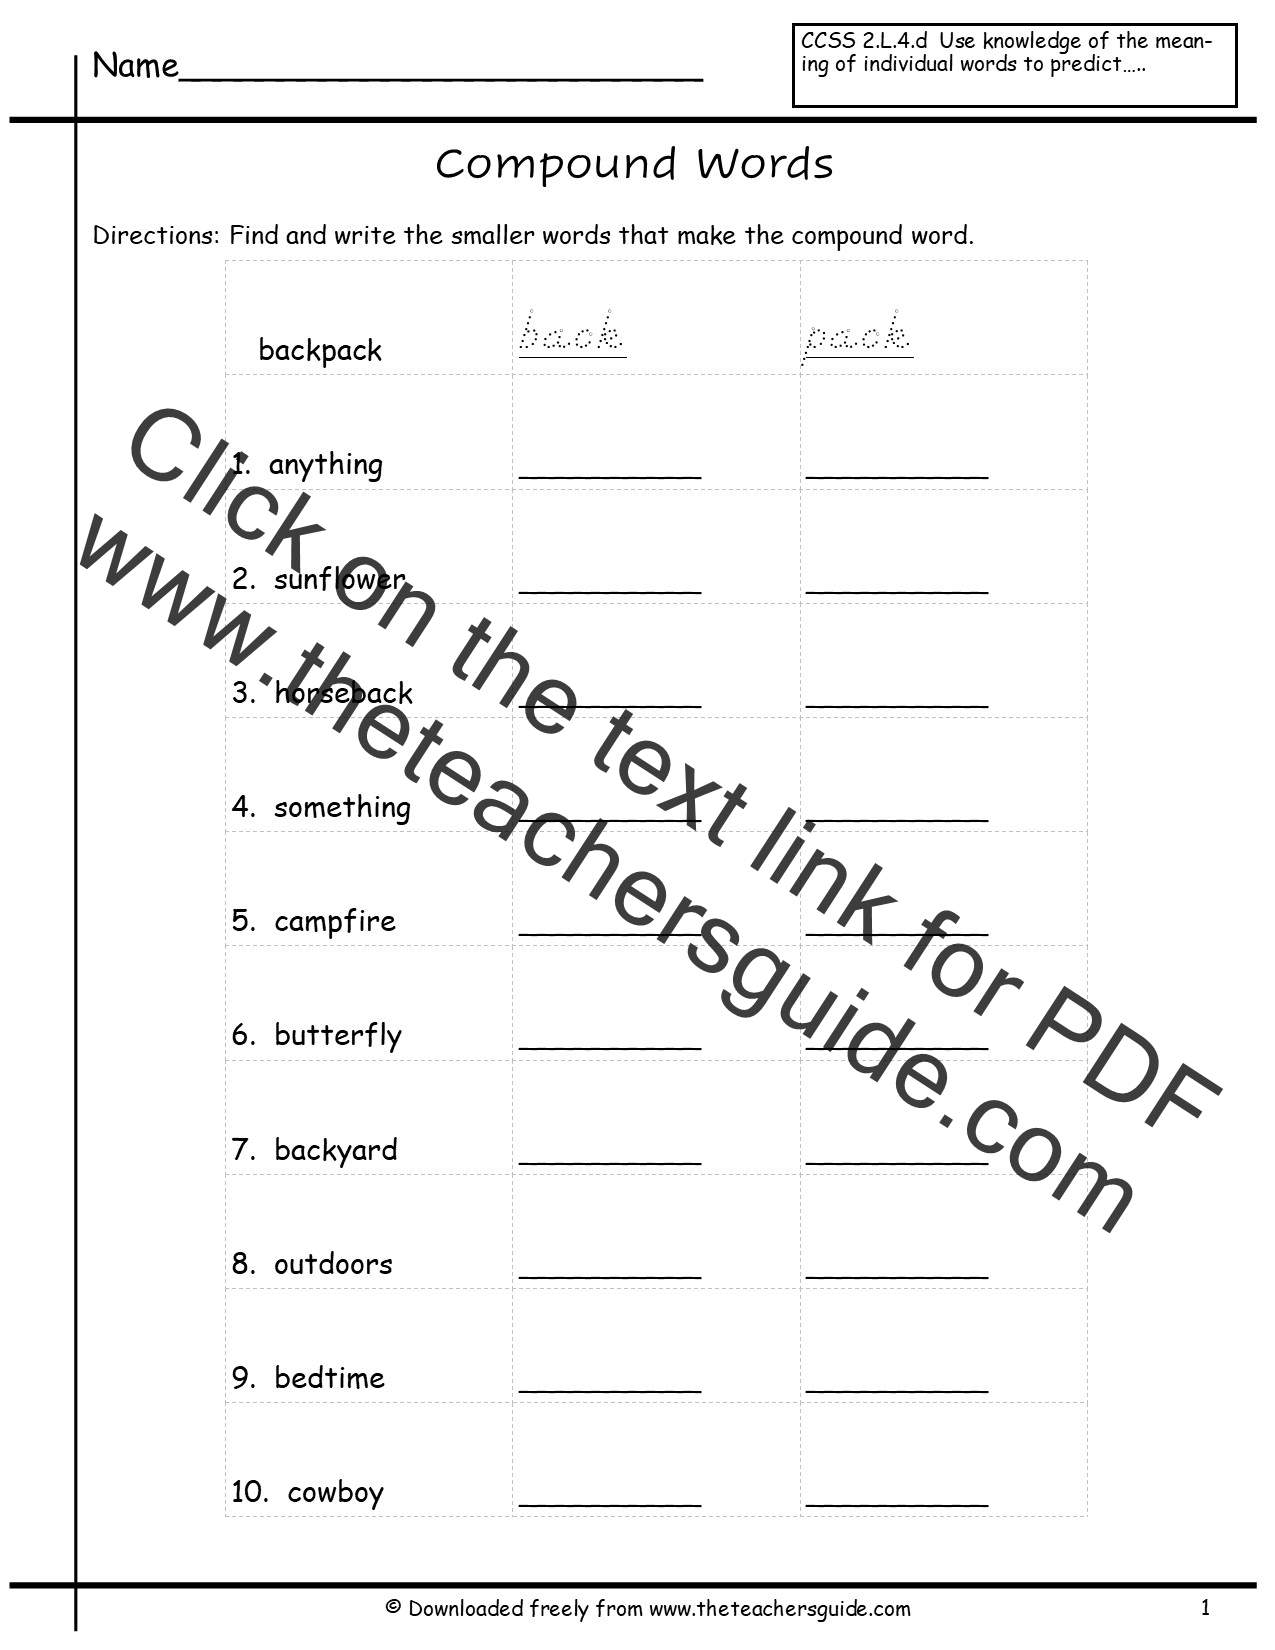 Compund Words Worksheet